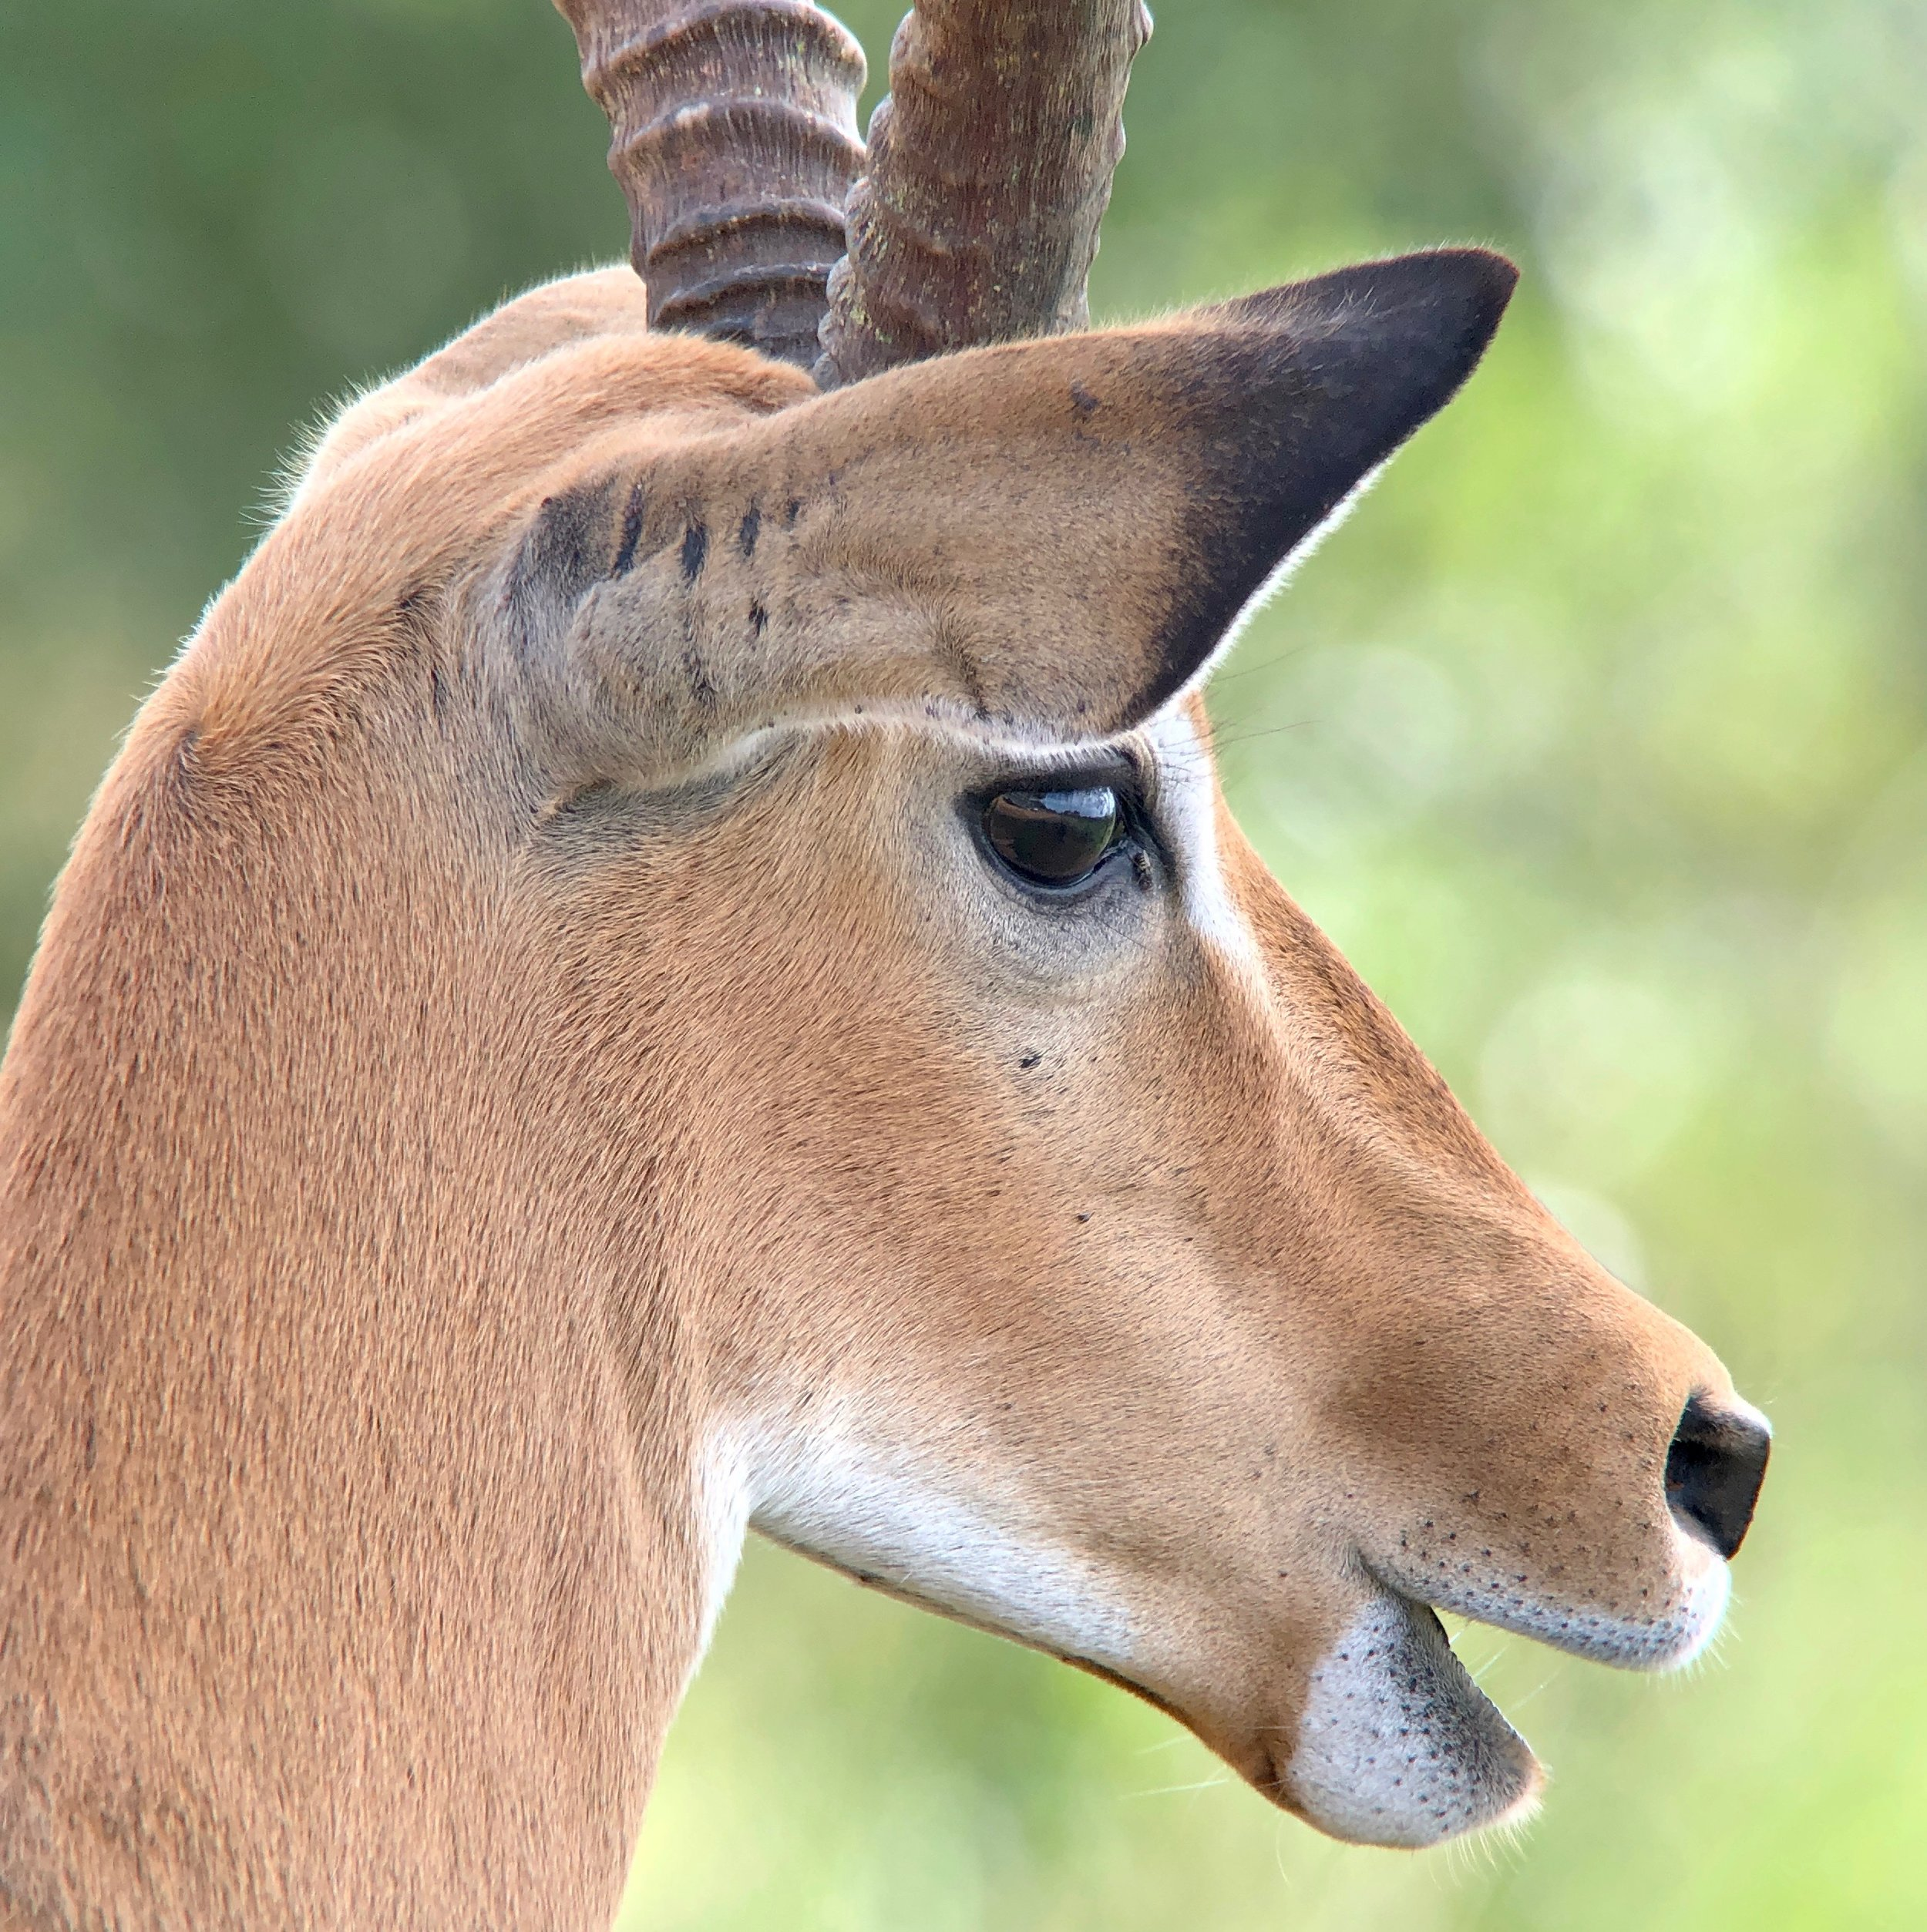 Digiscoped image of the male impala's head taken from our safari vehicle.